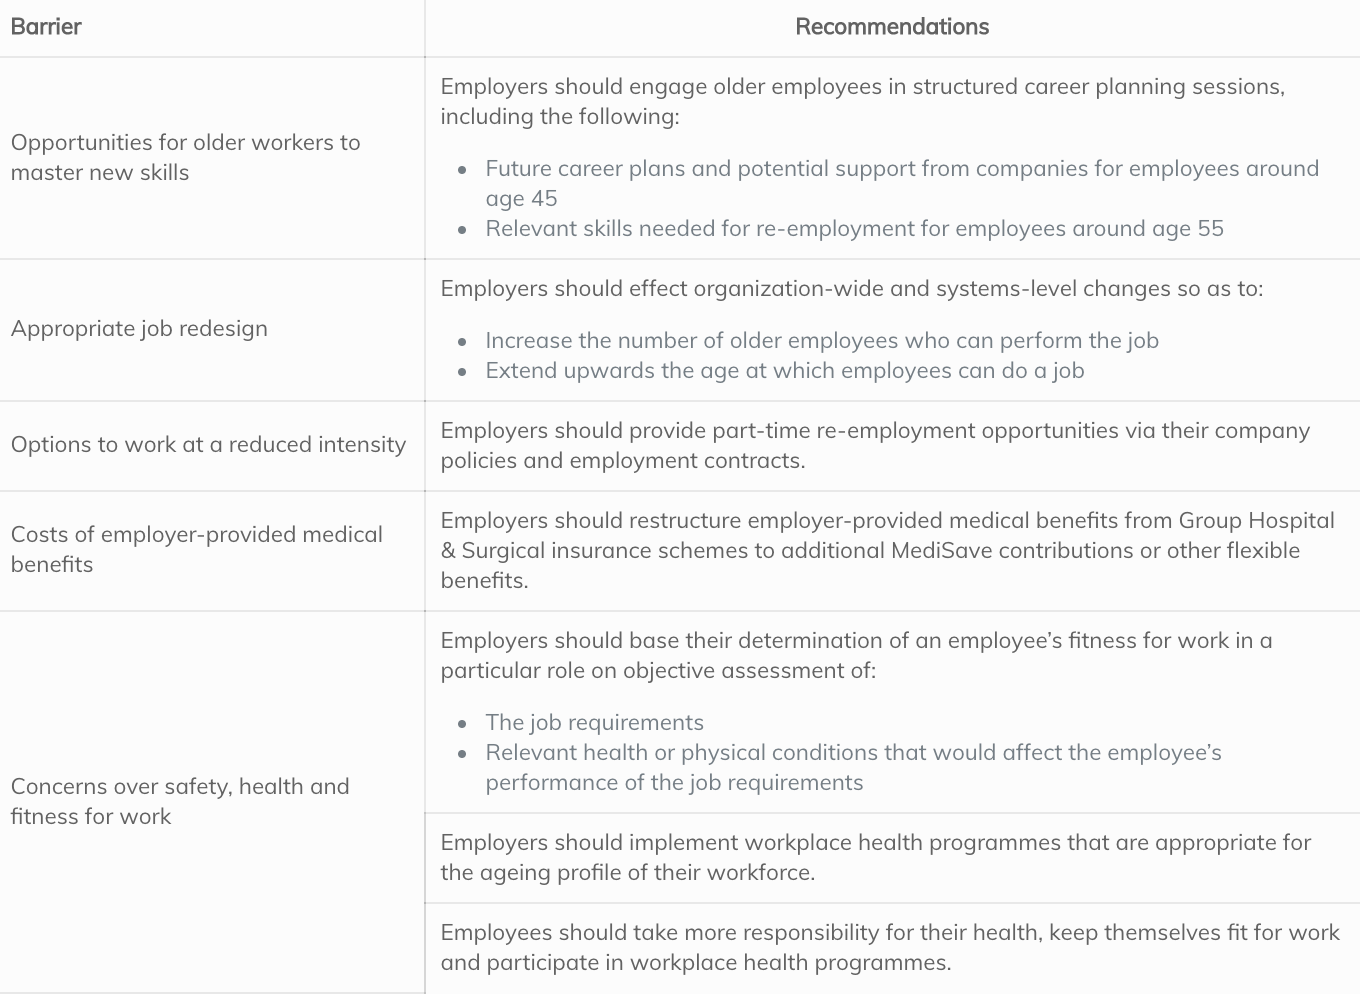 Recommendations to promote an inclusive workforce and progressive workplaces that value older workers